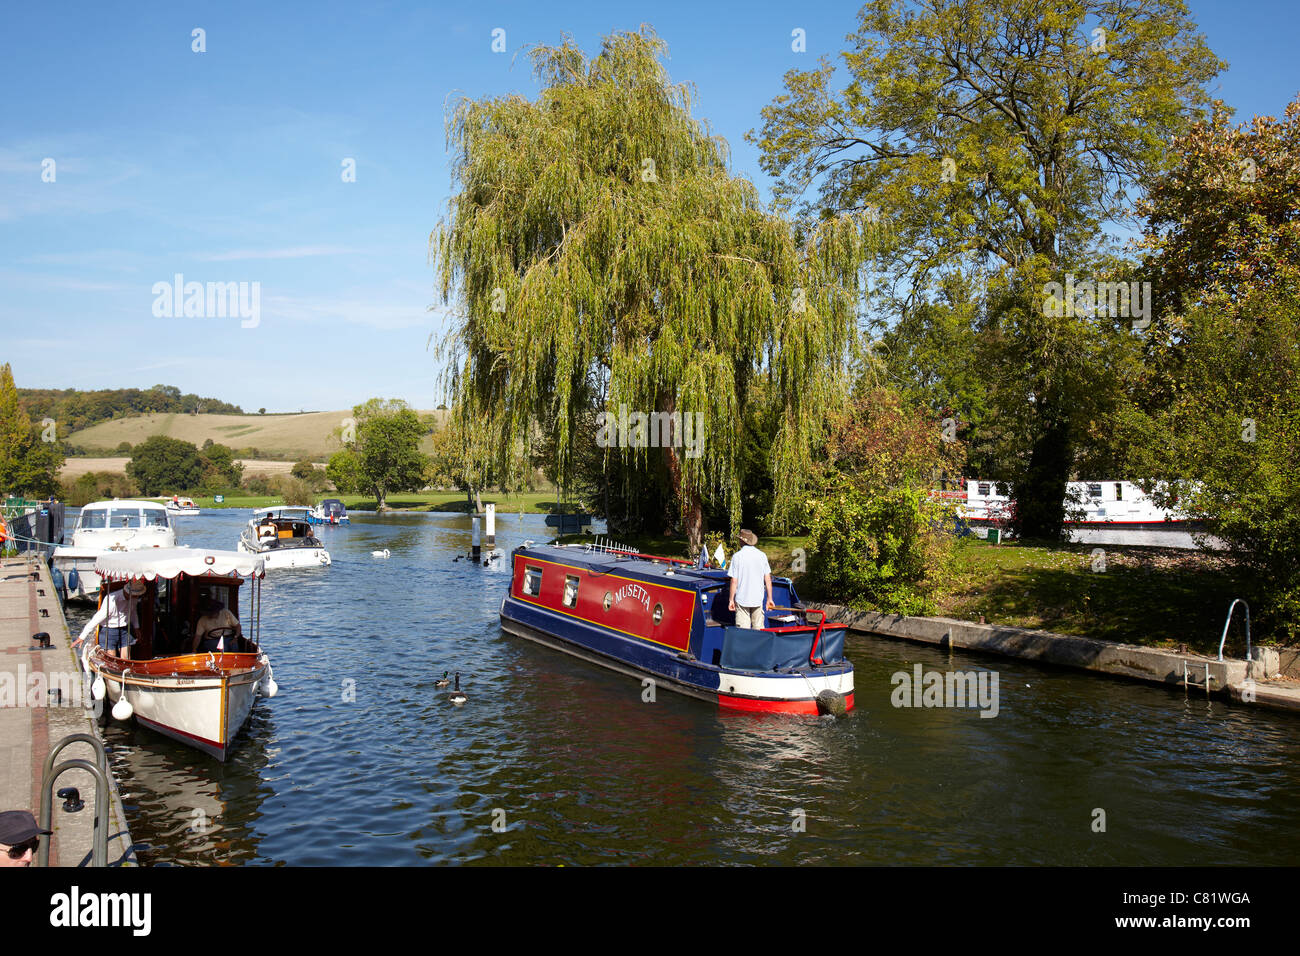 Boats on the River Thames at Mapledurham Lock near Reading, Berkshire. - Stock Image